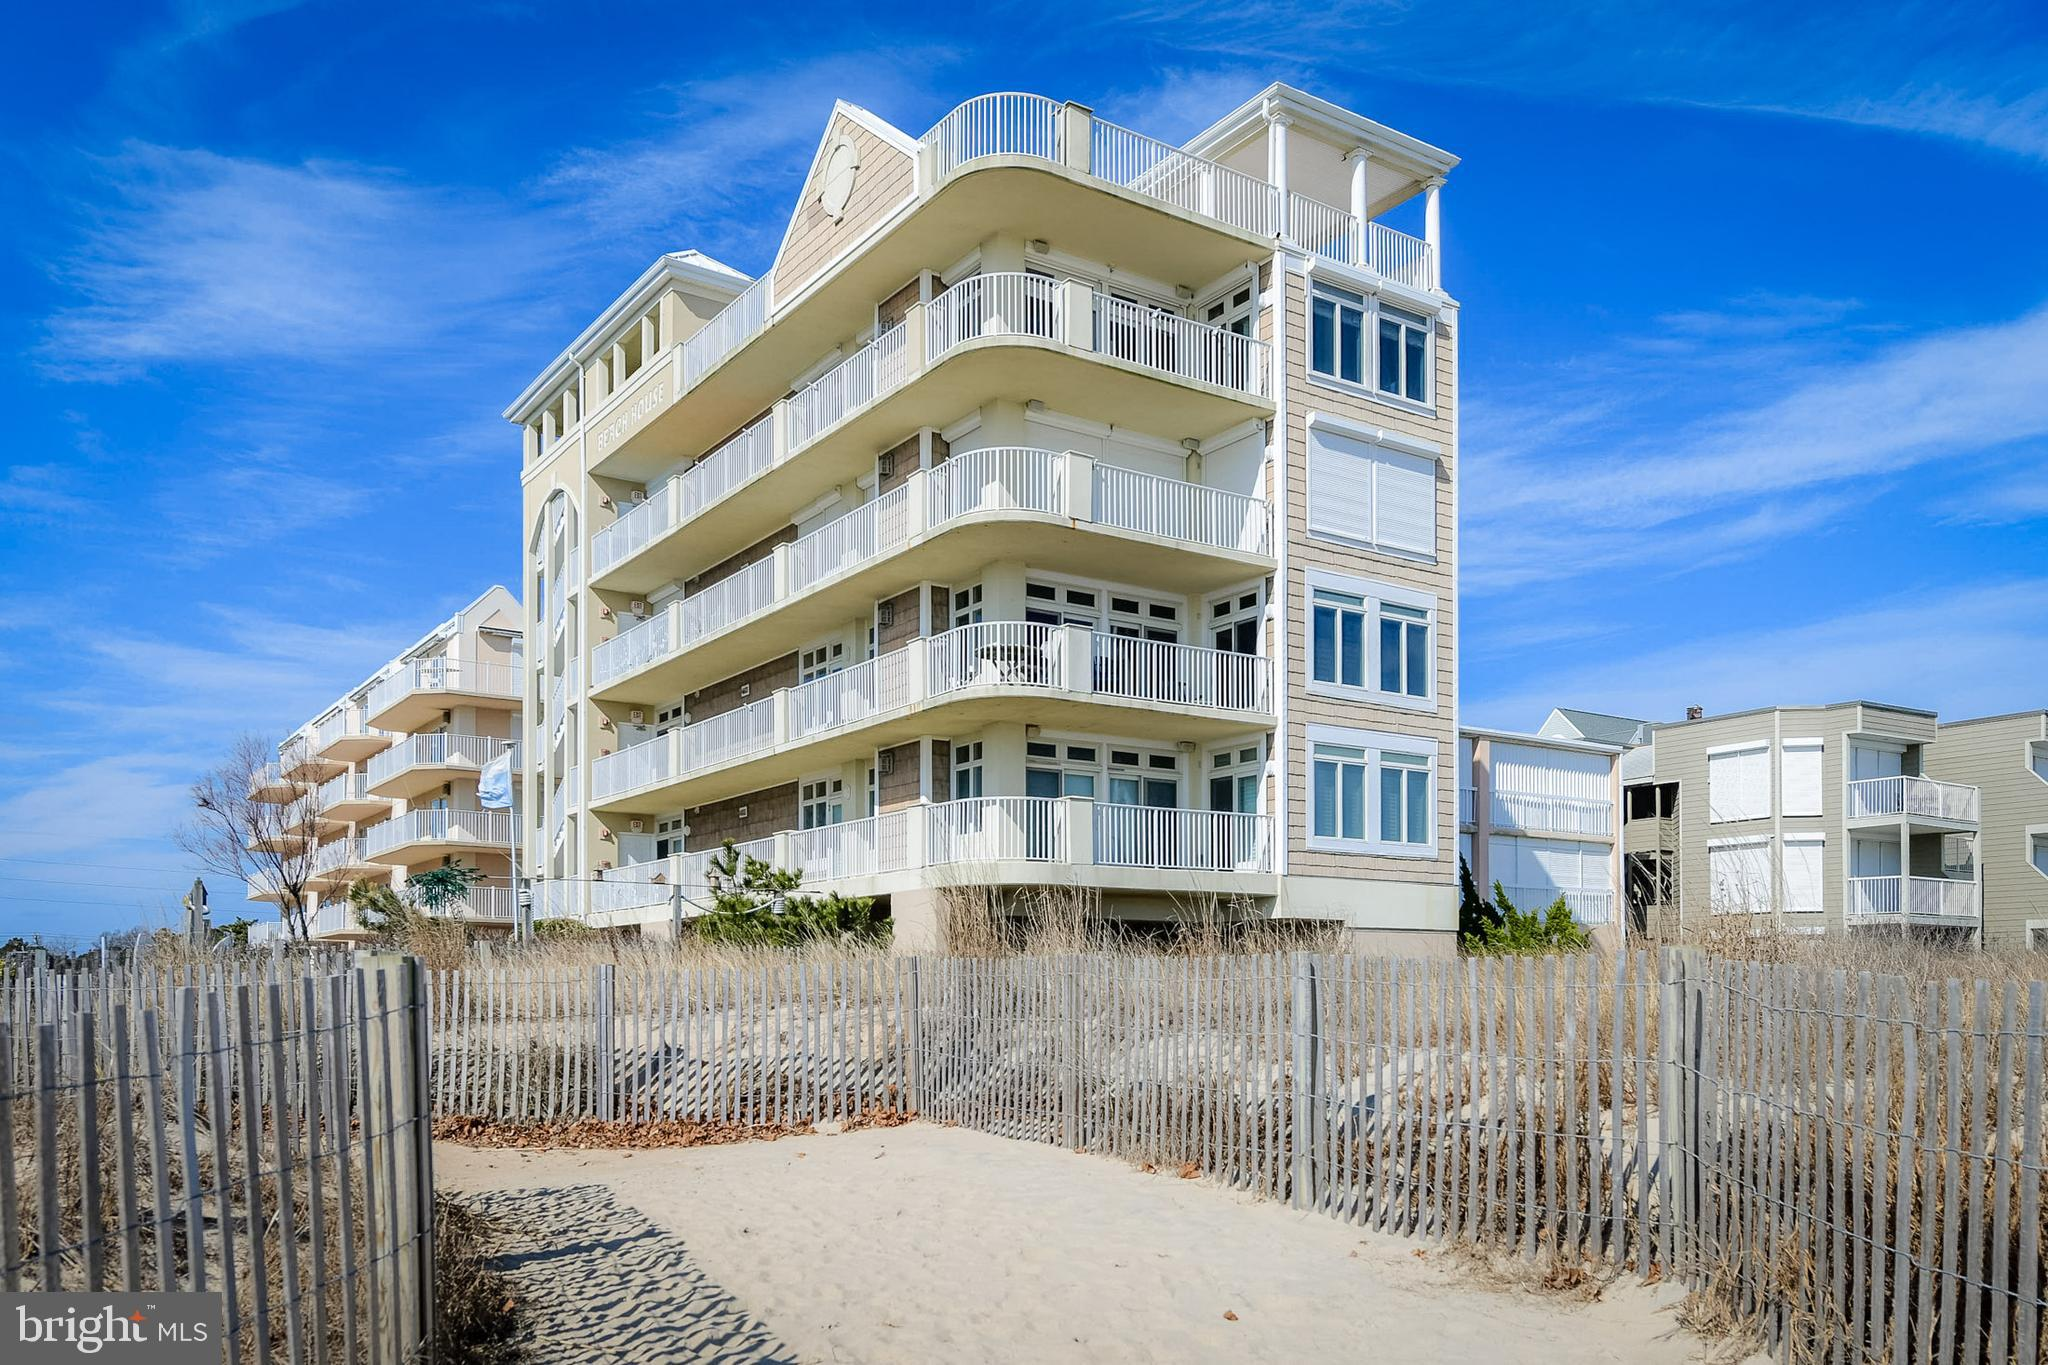 14200 WIGHT STREET 4, OCEAN CITY, MD 21842